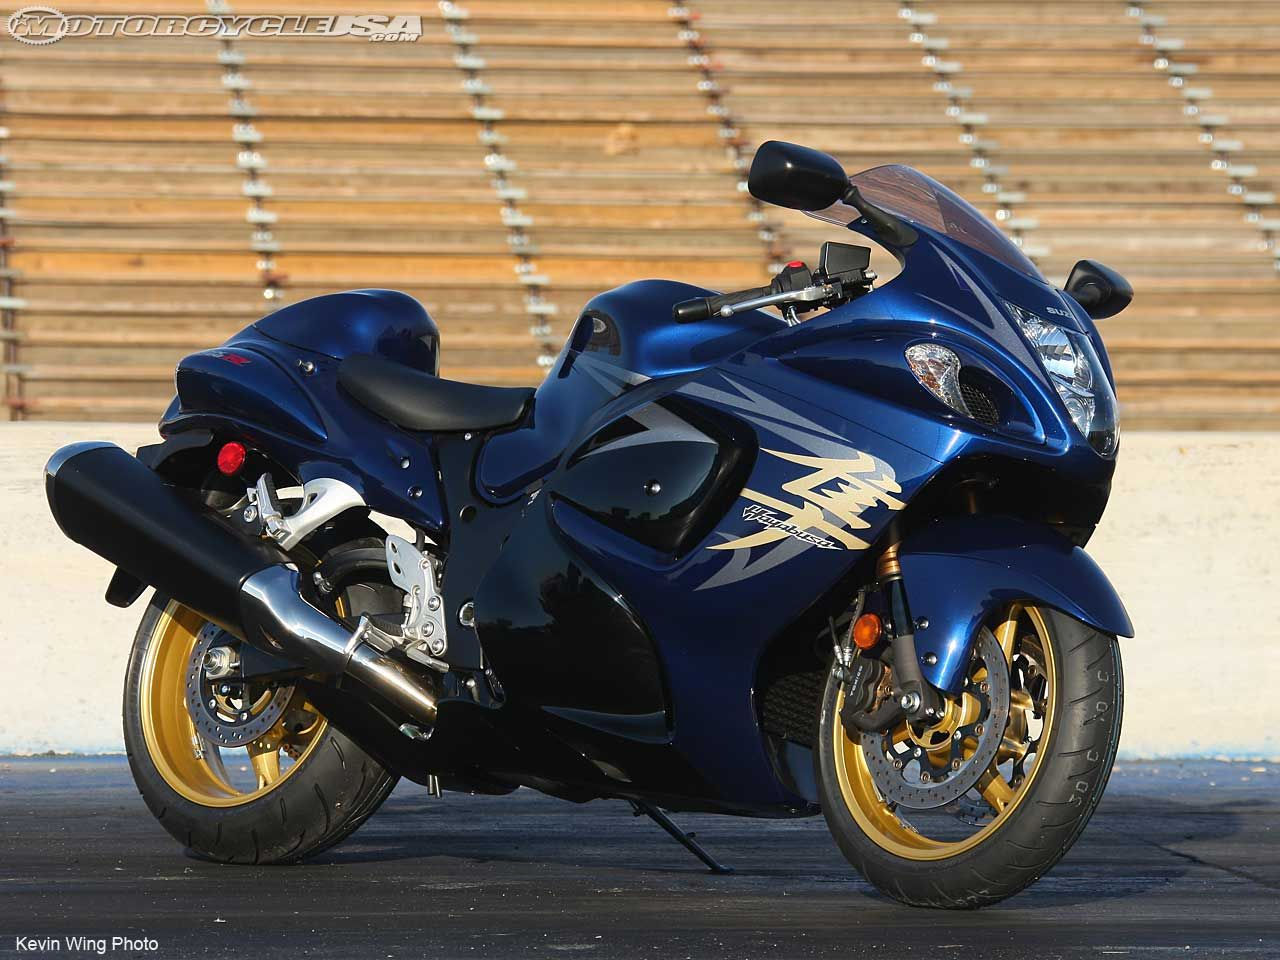 Mist Popular Bikes Blue Bike Gold Rims Kawiforums Com